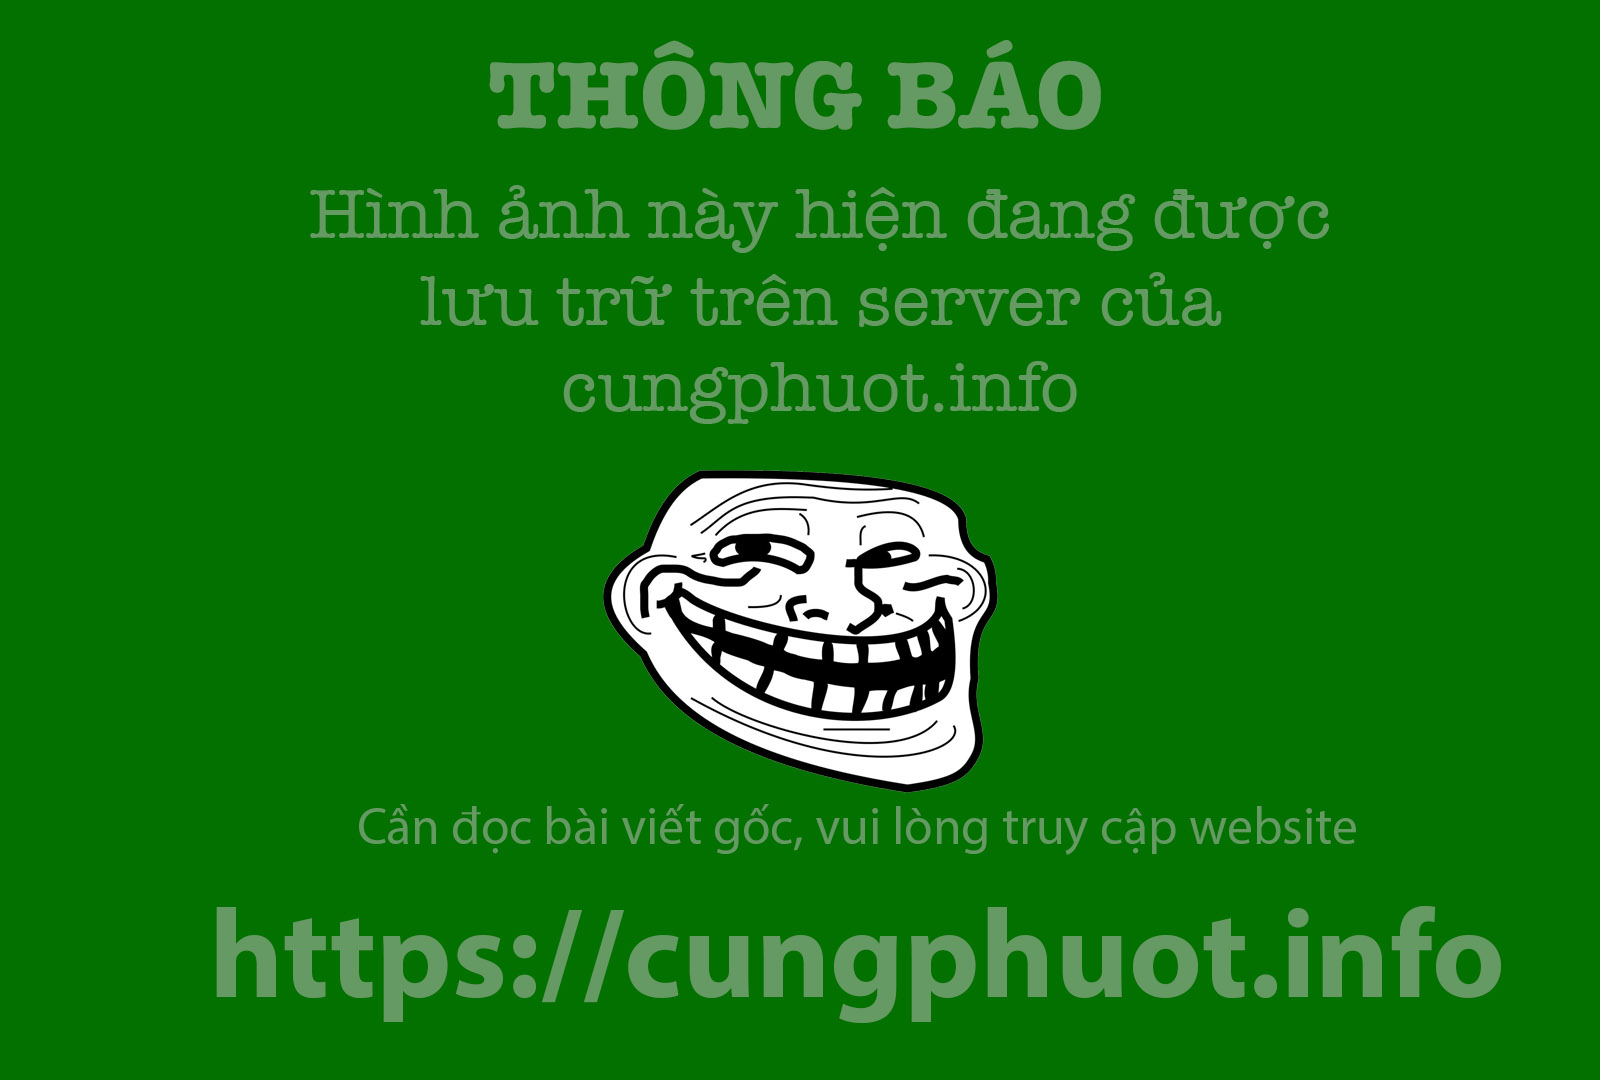 May von nui tren cong troi Muong Long hinh anh 10